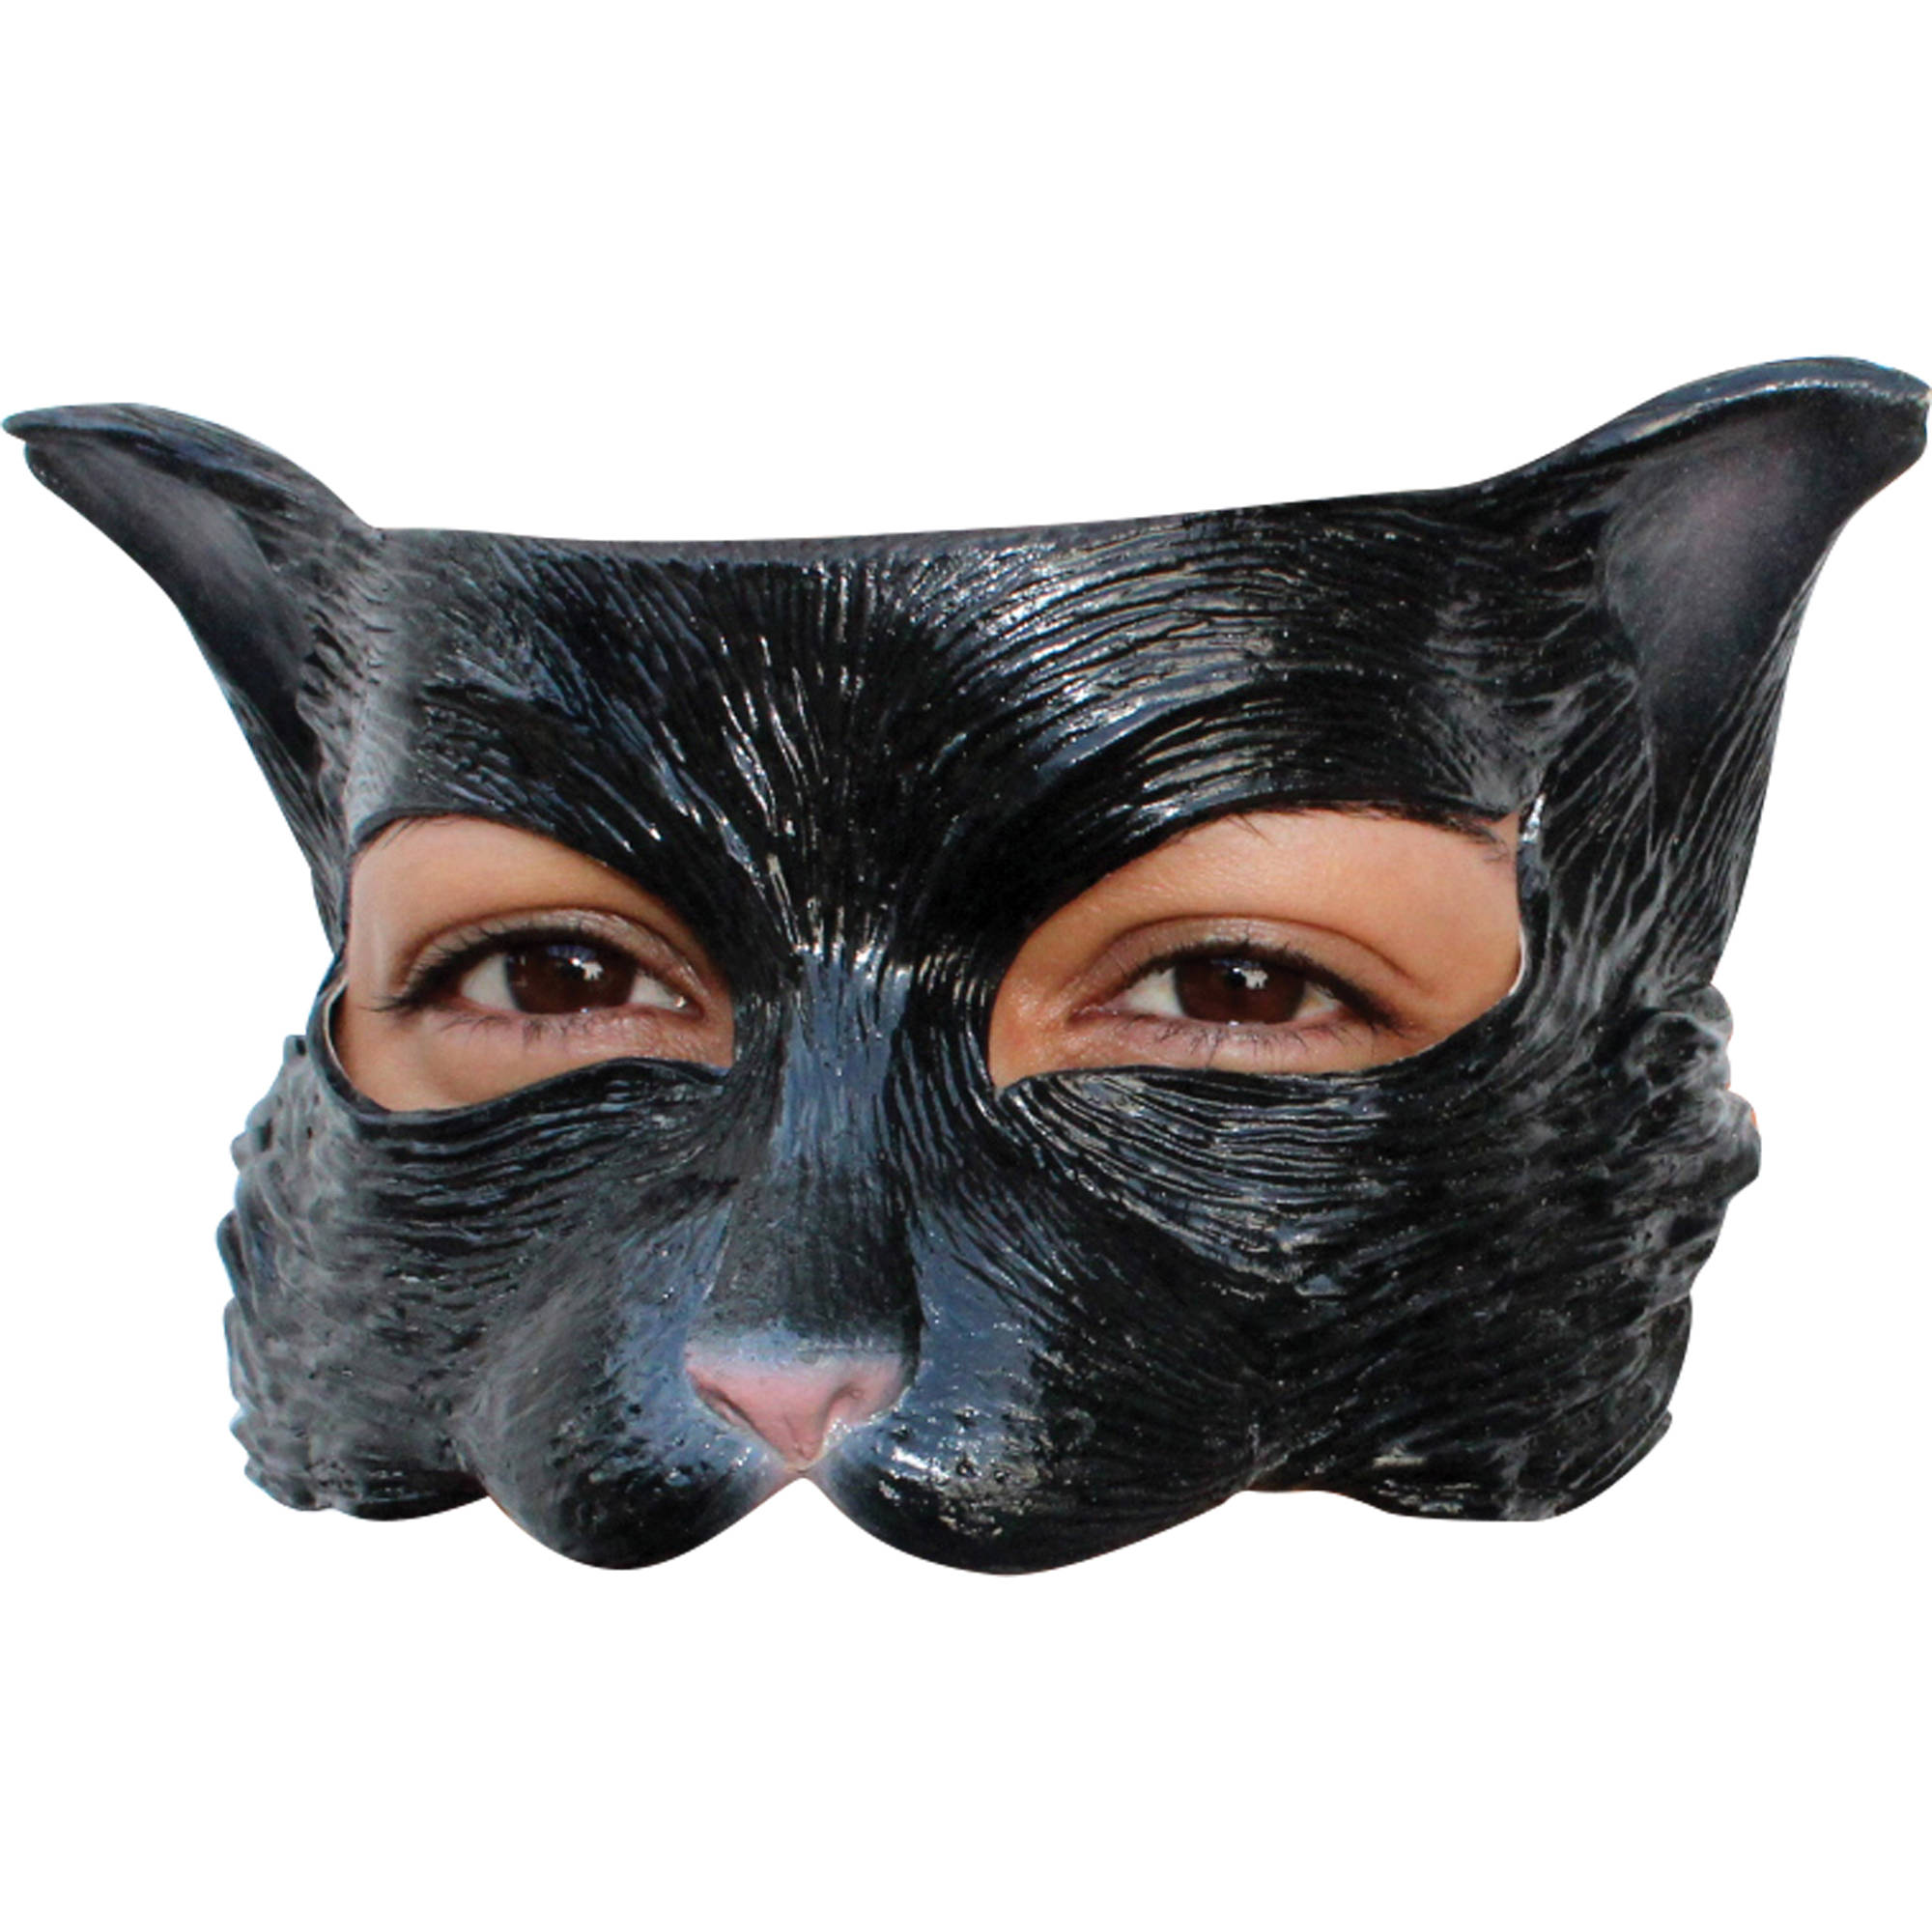 Black Kitty Latex Half Mask Adult Halloween Accessory